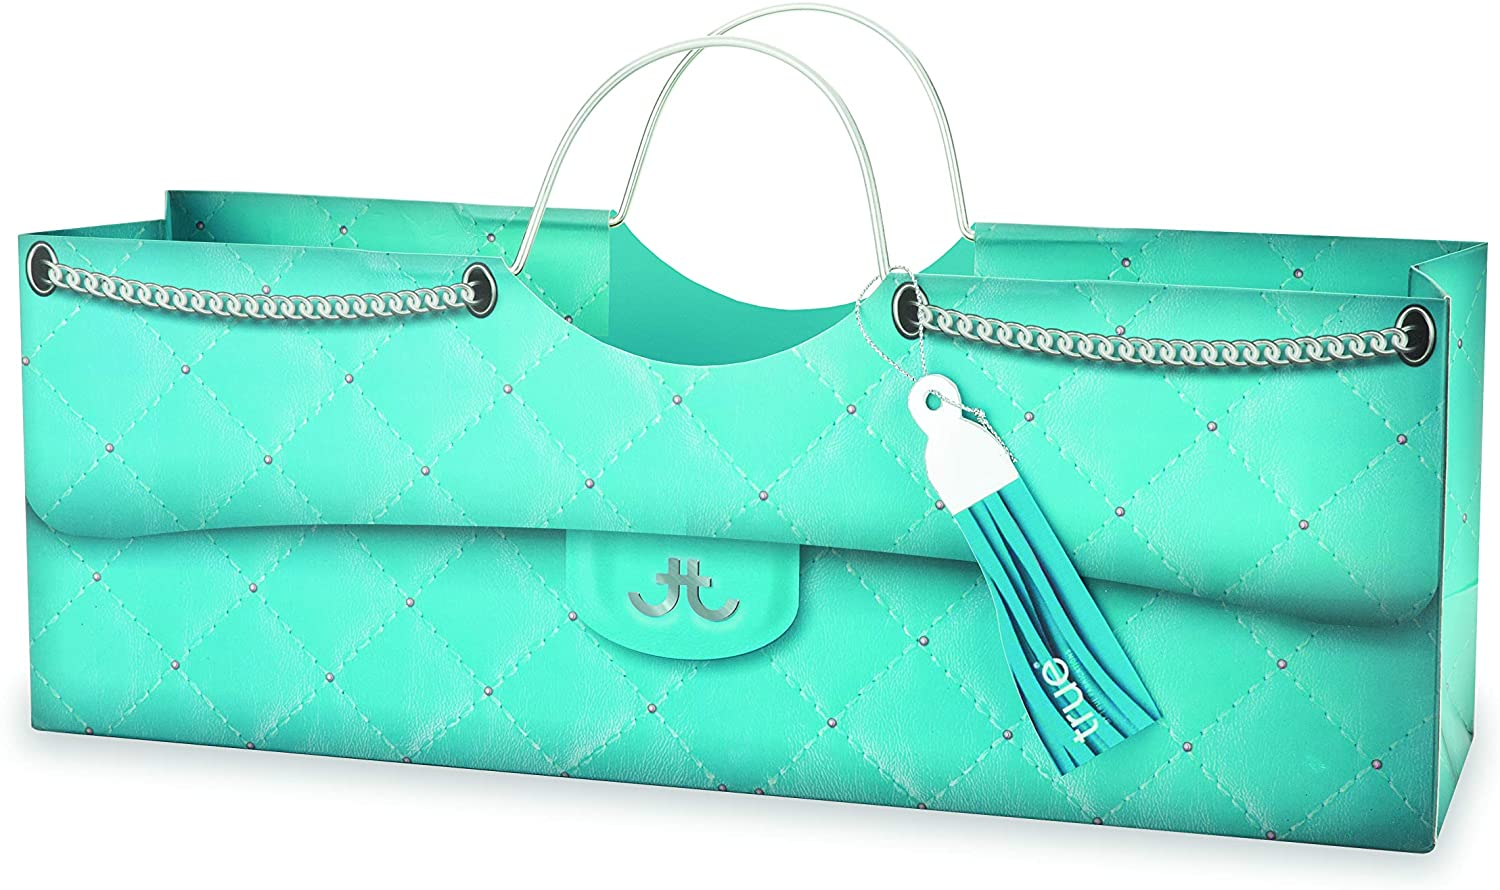 Cakewalk Turquoise Quilted Wine Purse Bag, Blue,